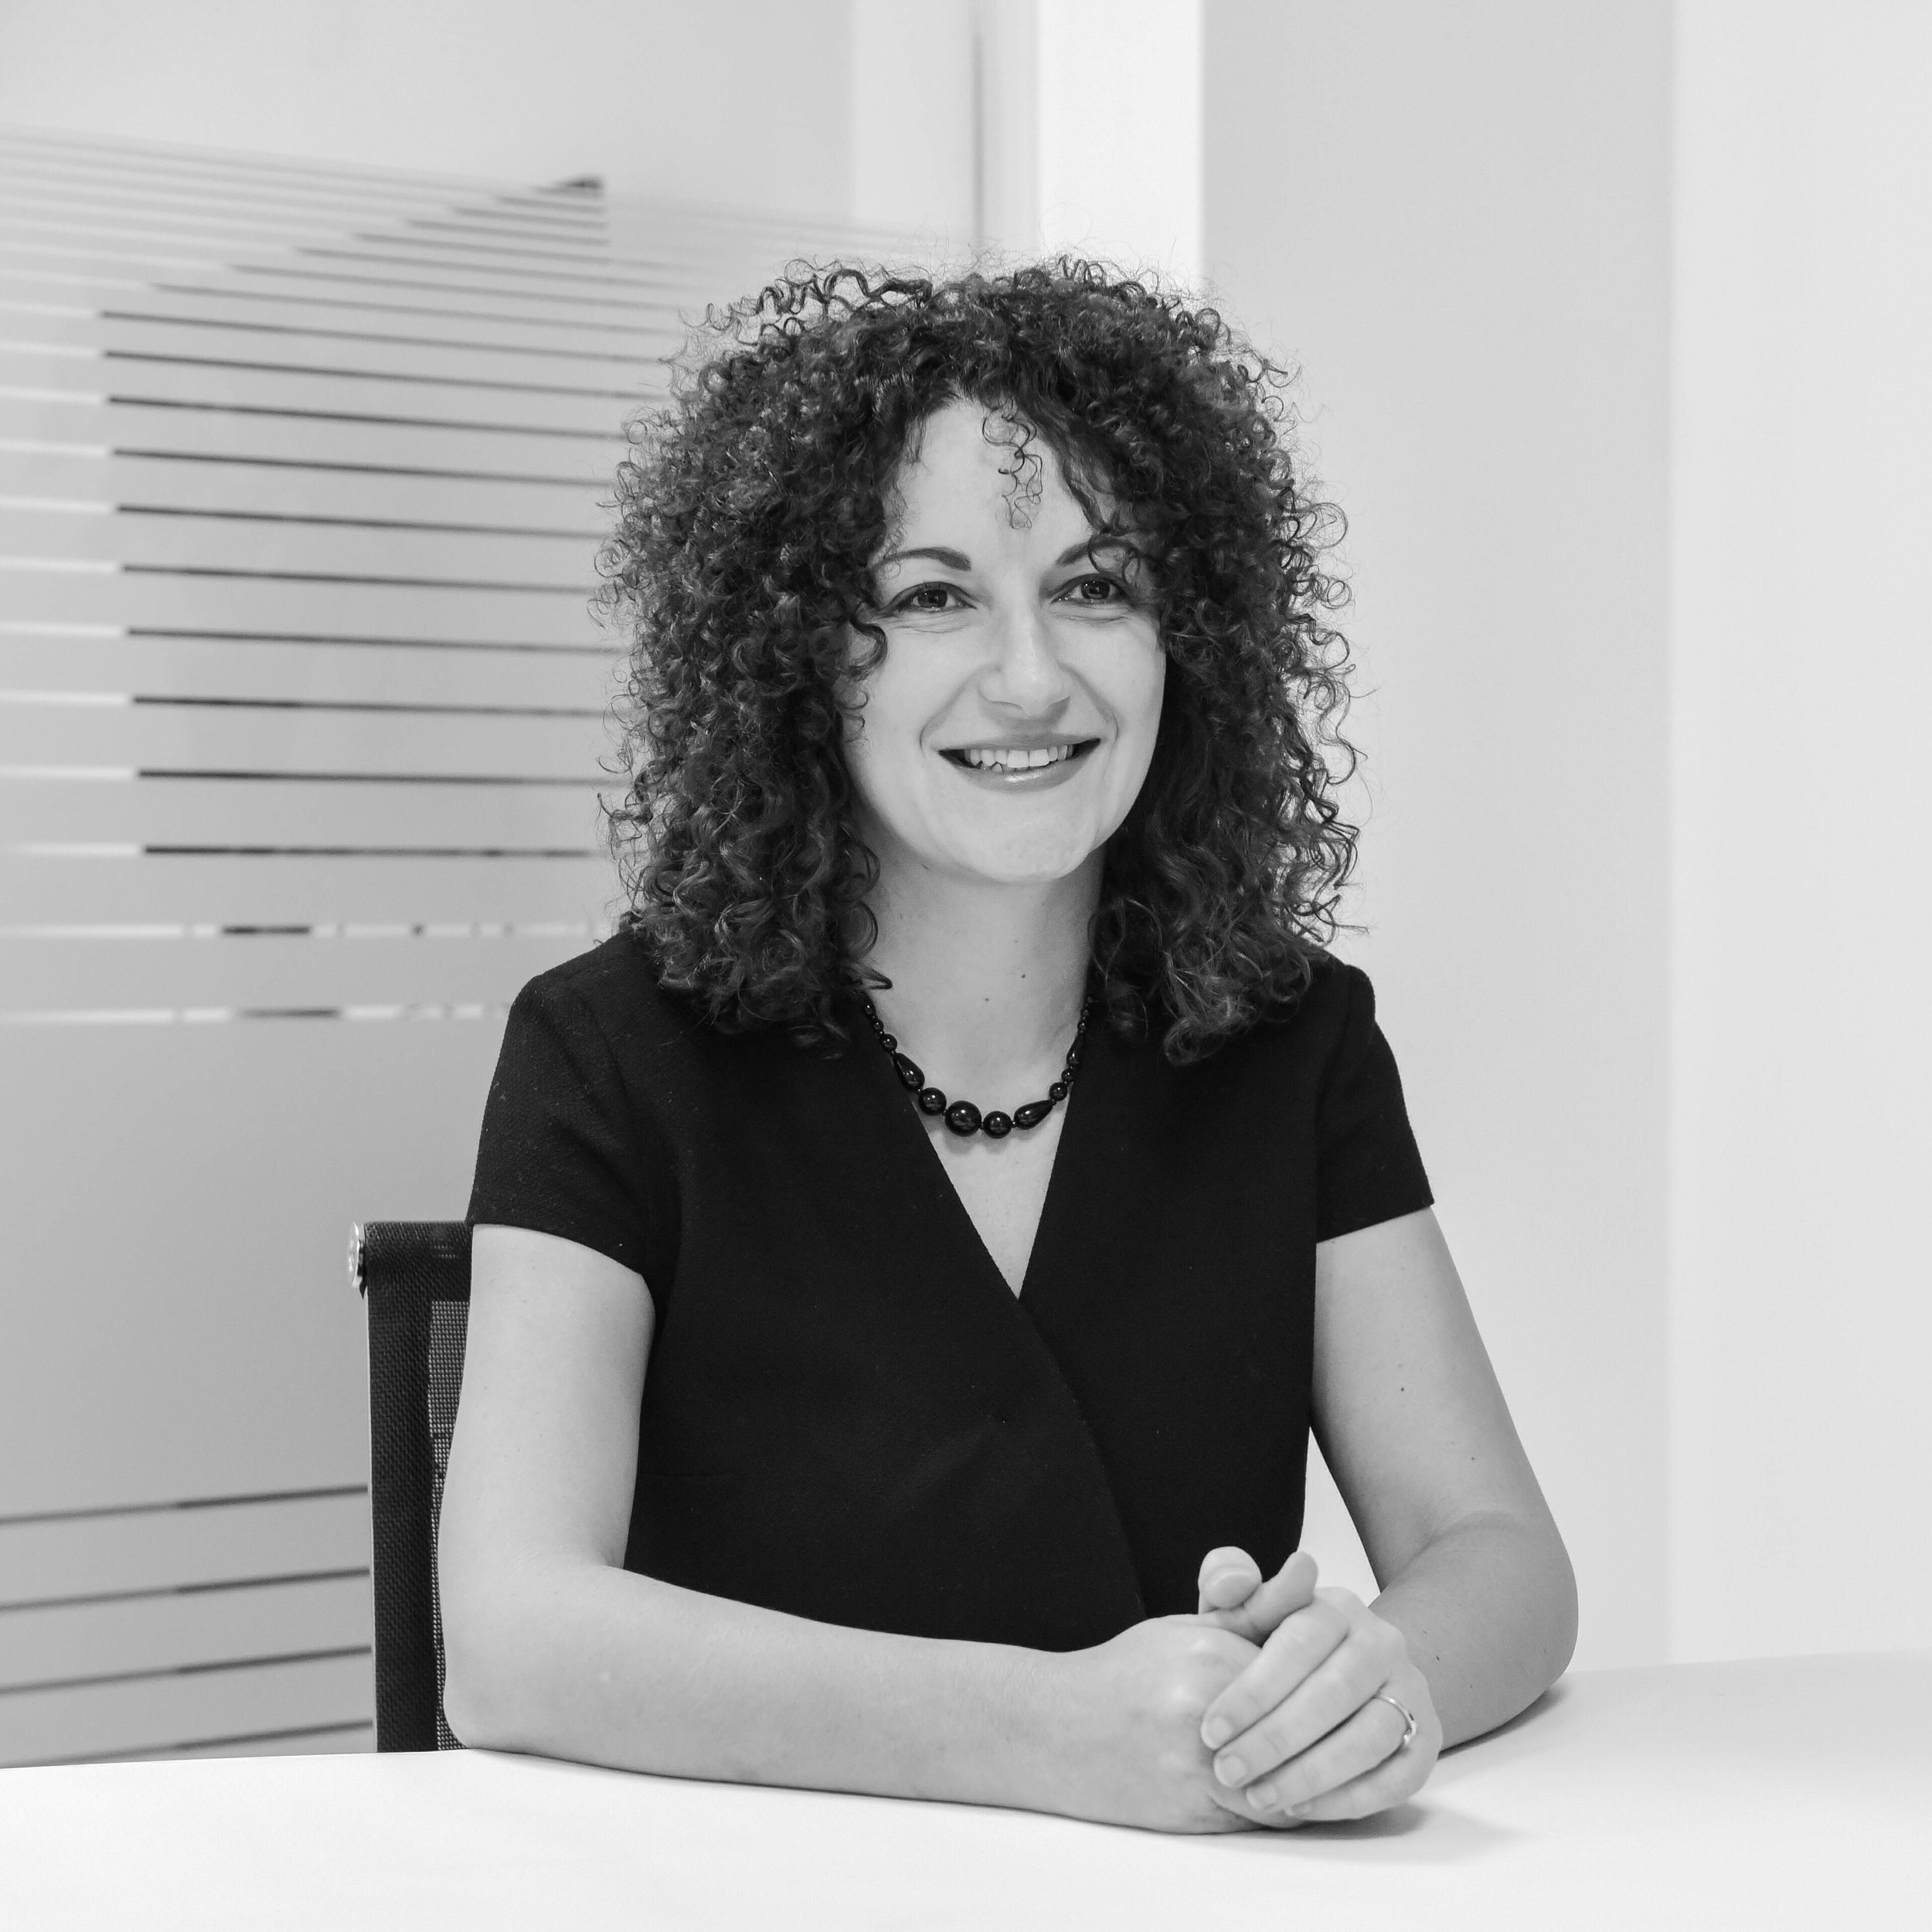 Alicia Barbara joined Hanover in September 2018 as Chief Financial Officer.  Alicia previously worked at RSM Tenon in the United Kingdom and most recently as an Executive Director and Group Financial Controller at Liongate Capital Management Ltd, a Malta based Fund of Hedge Funds.  Alicia leads the finance team and is responsible for all financial processes, controls and procedures. She is a qualified Chartered Accountant with a Diploma in Financial Services Operations and Compliance.